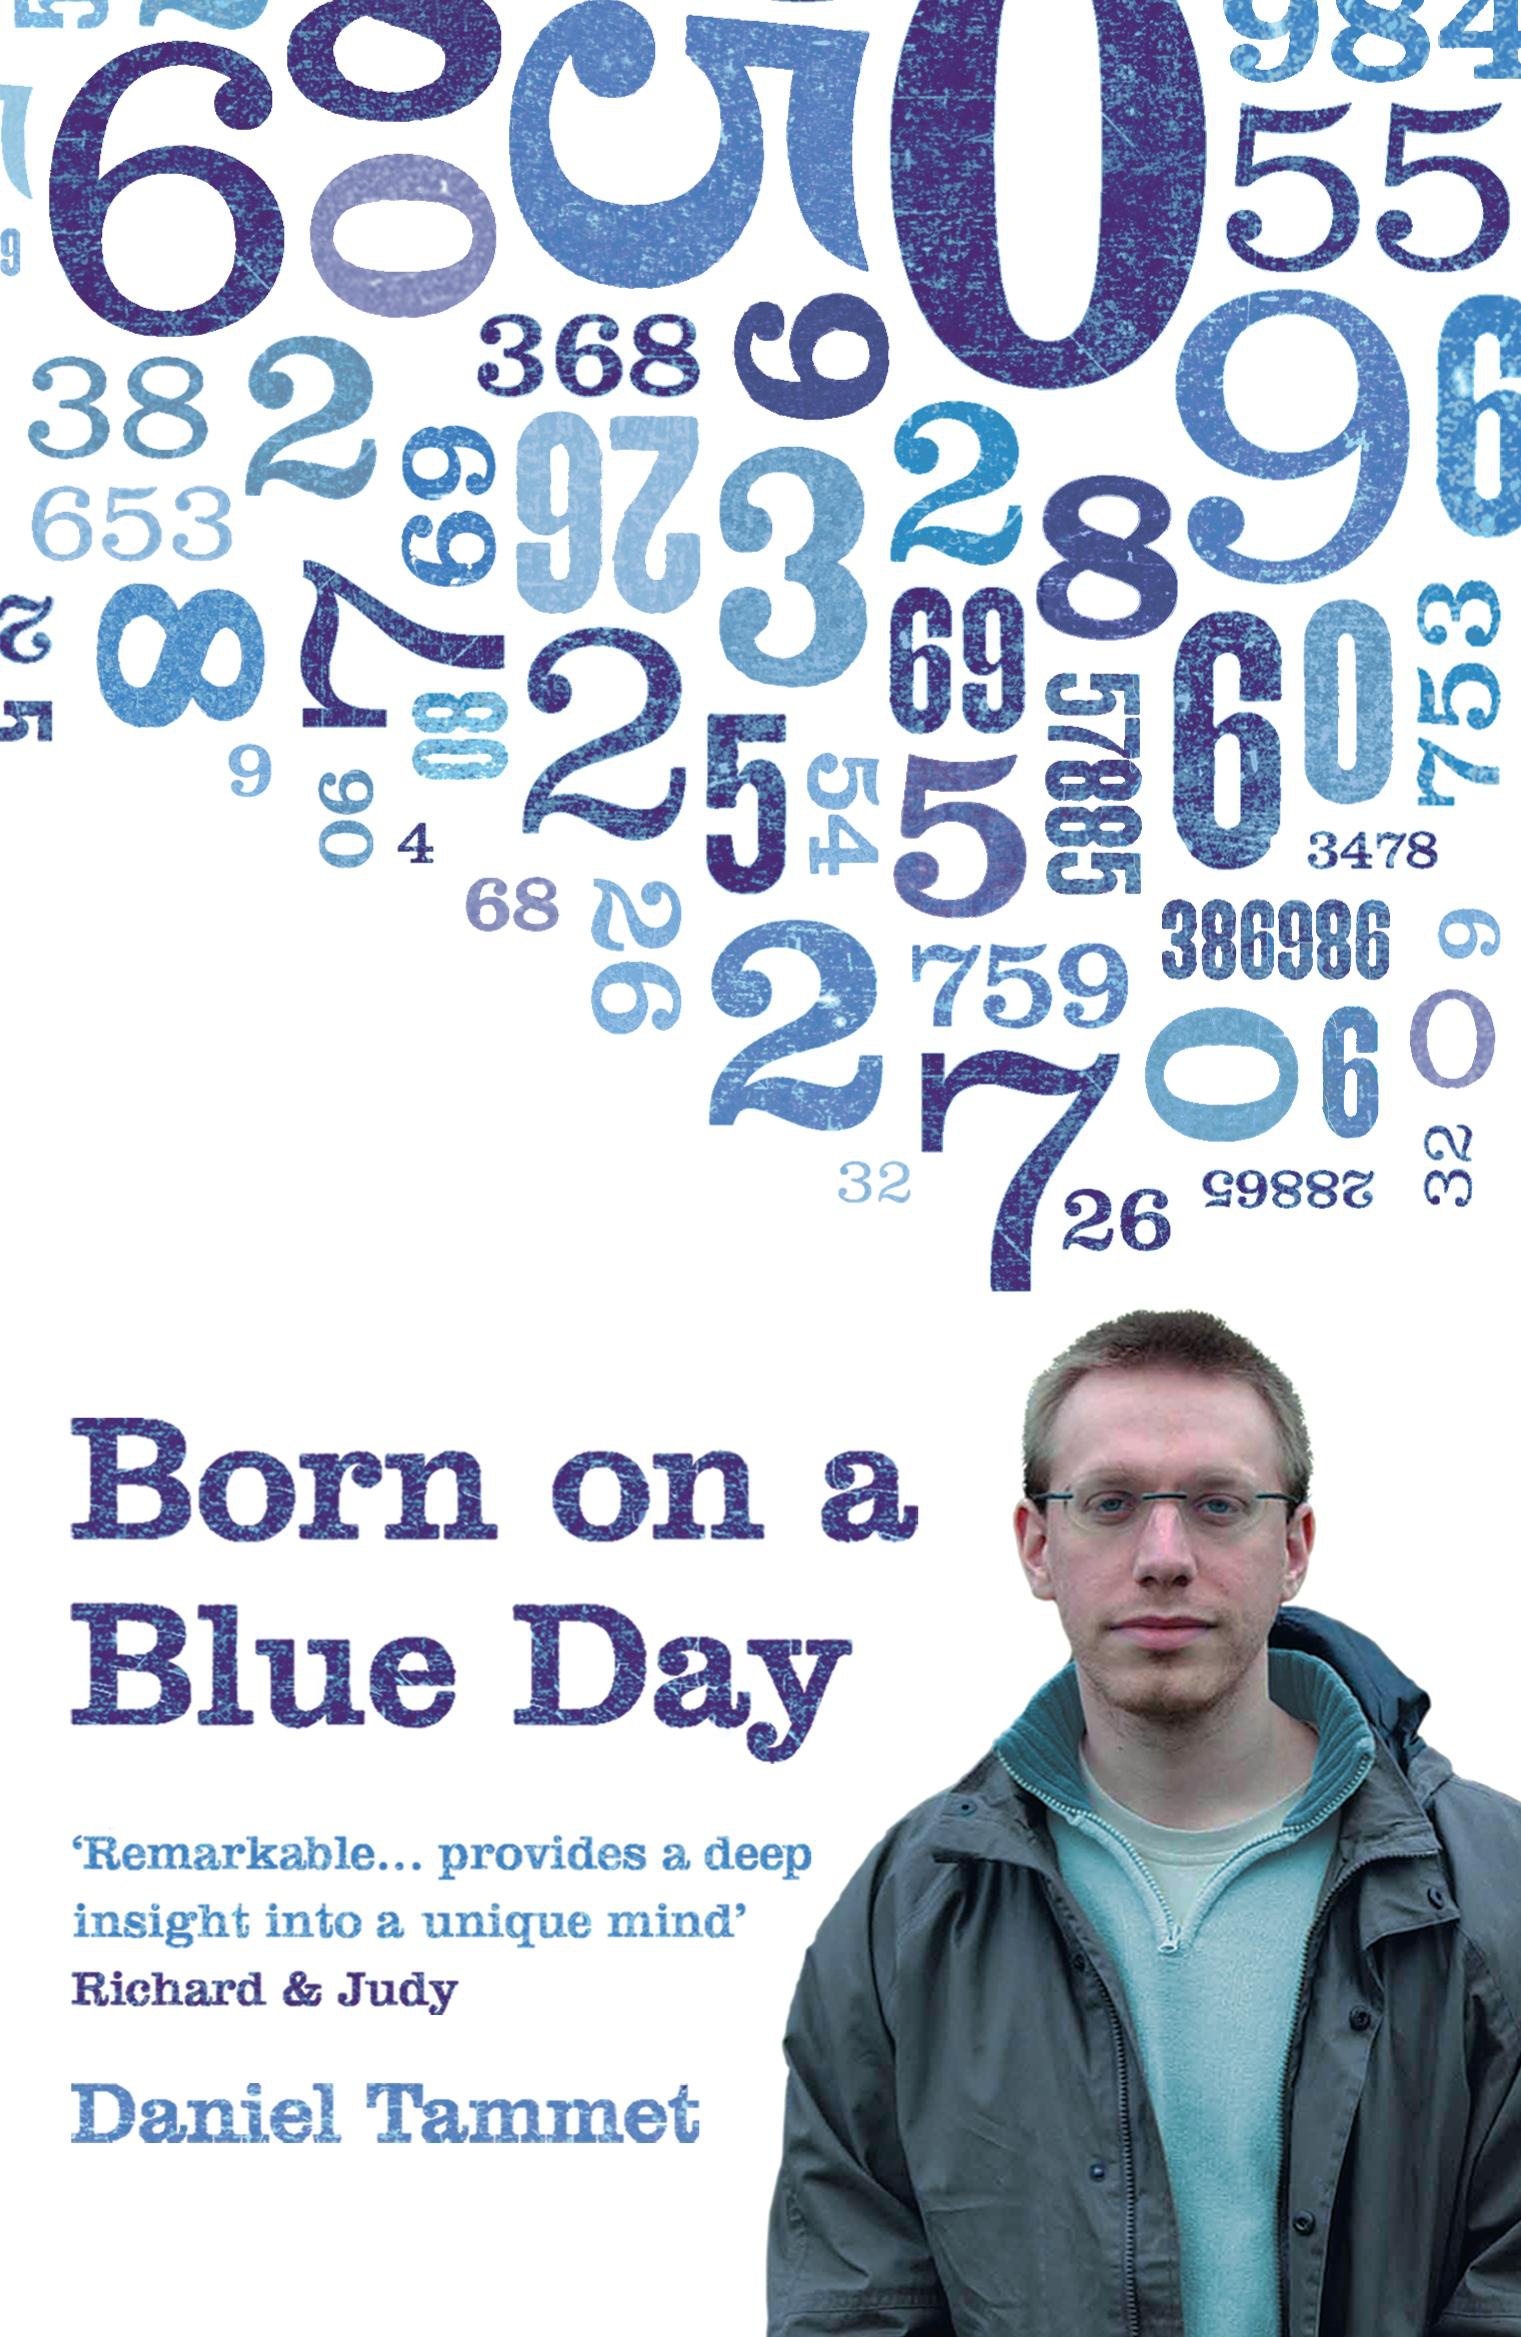 Born on a Blue Day by Daniel Tammet, ISBN: 9780340899755